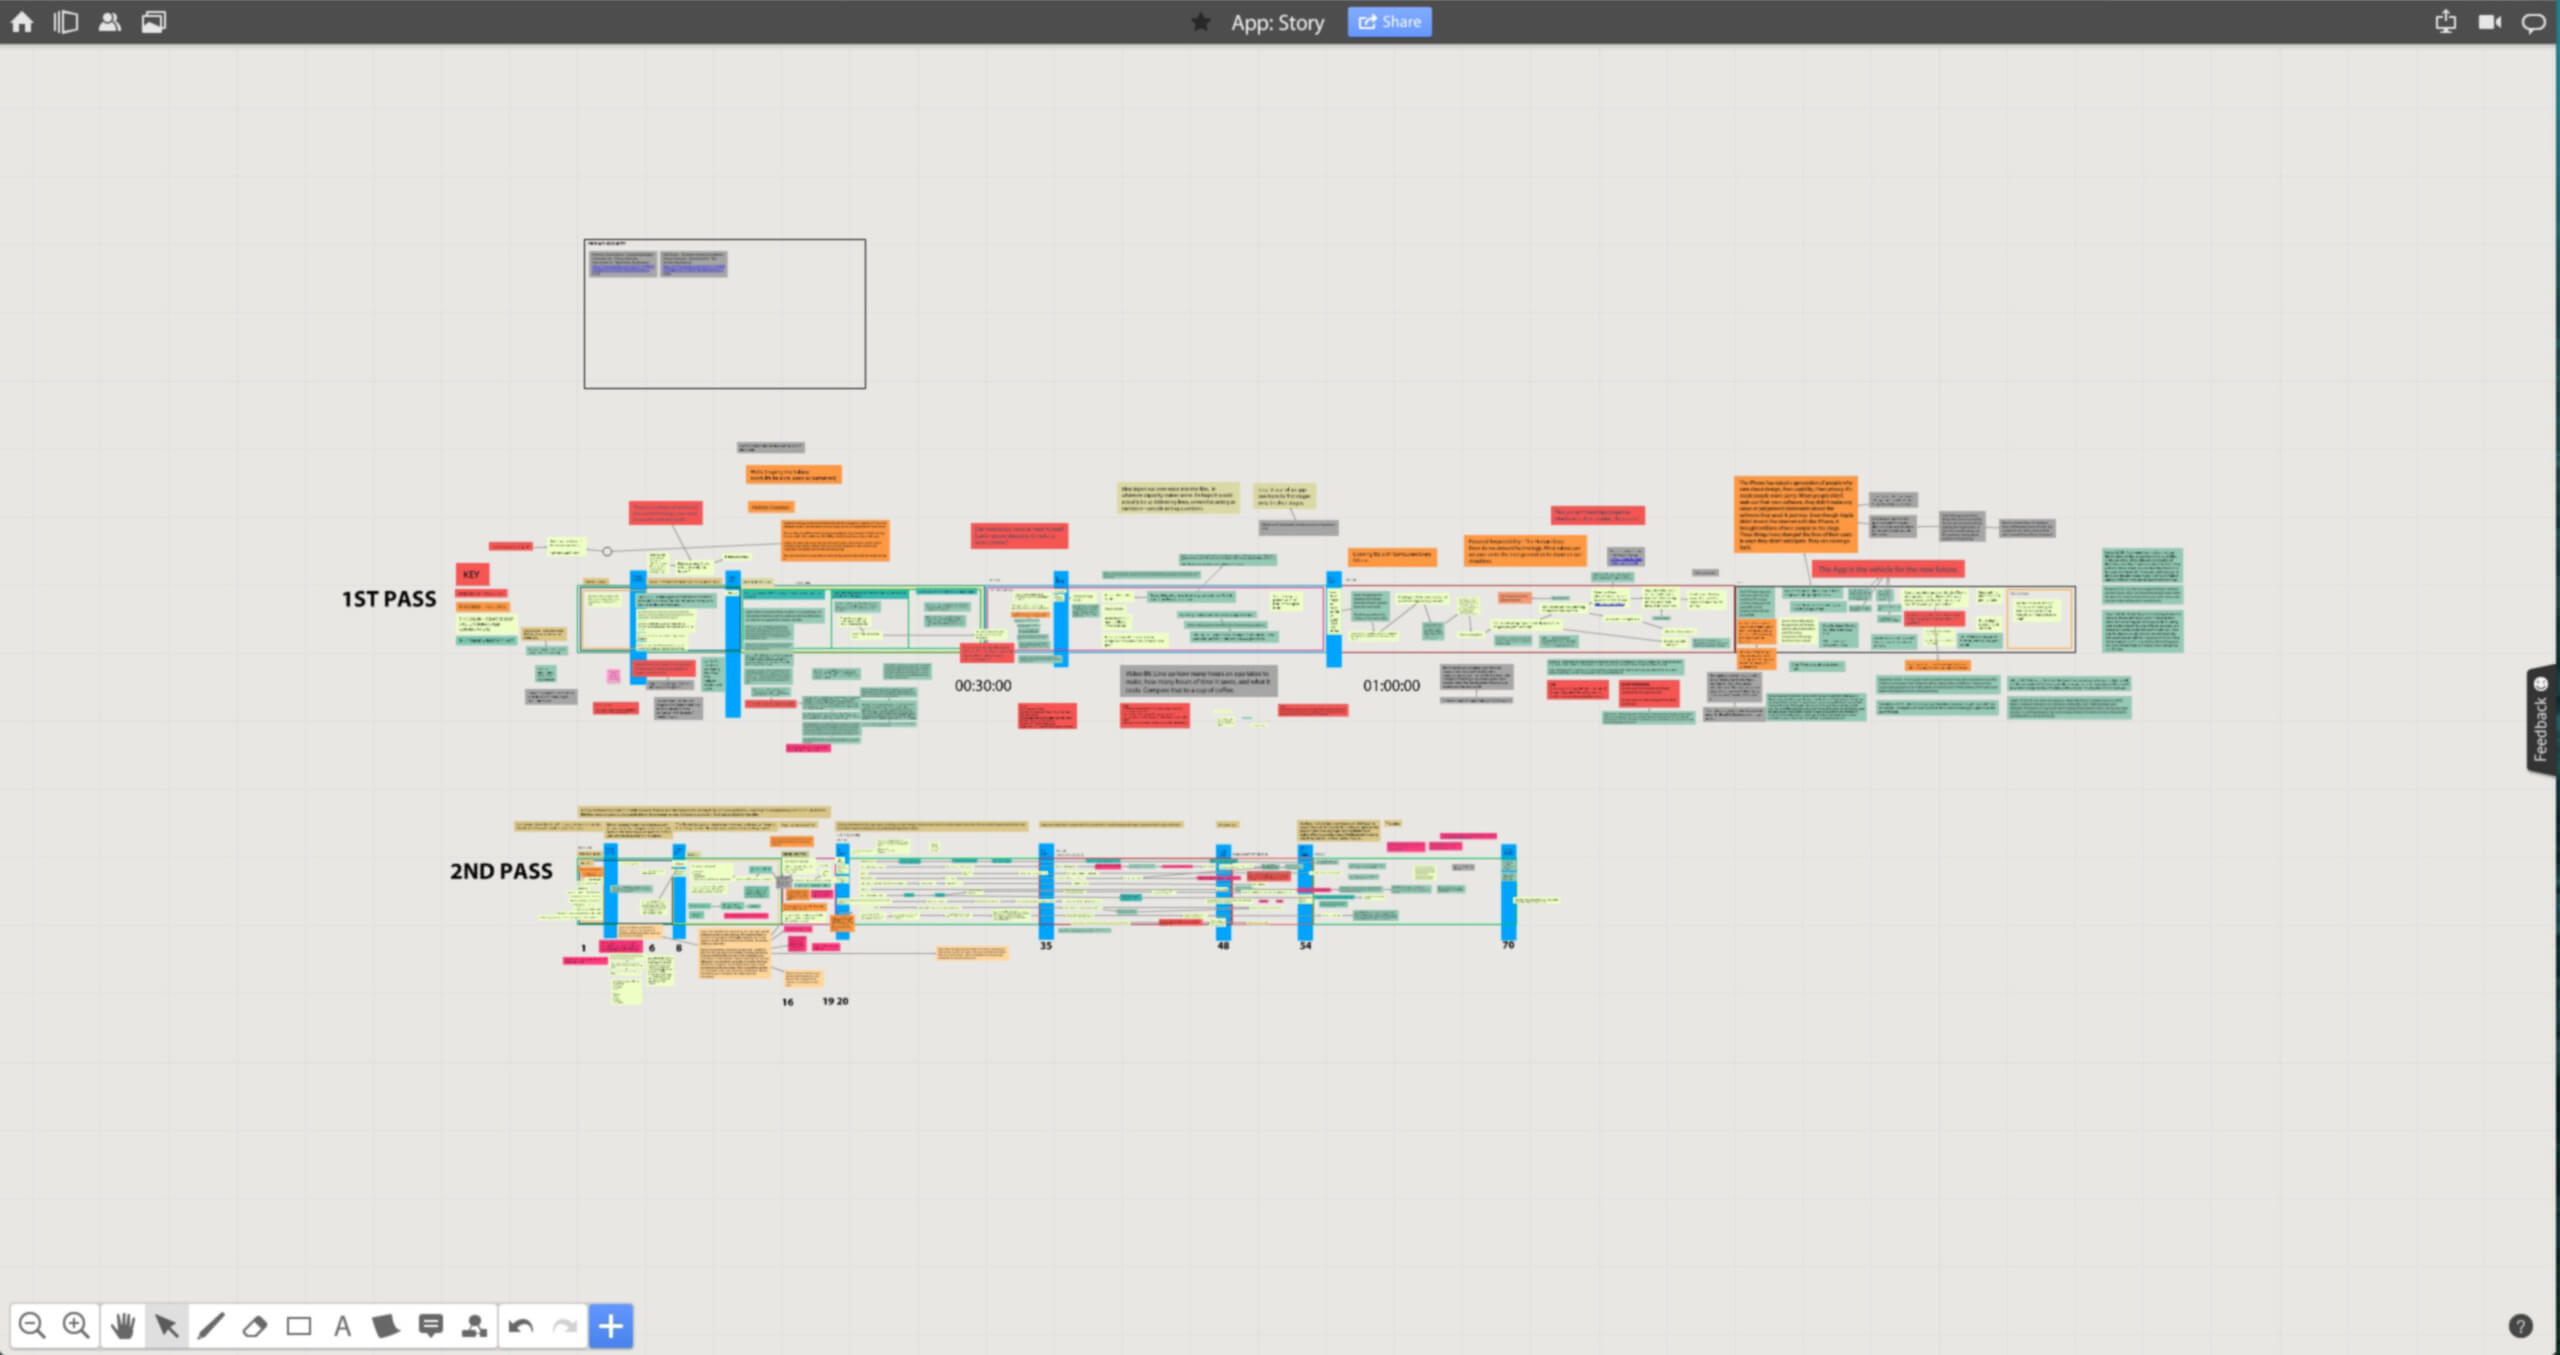 Story building in RealtimeBoard